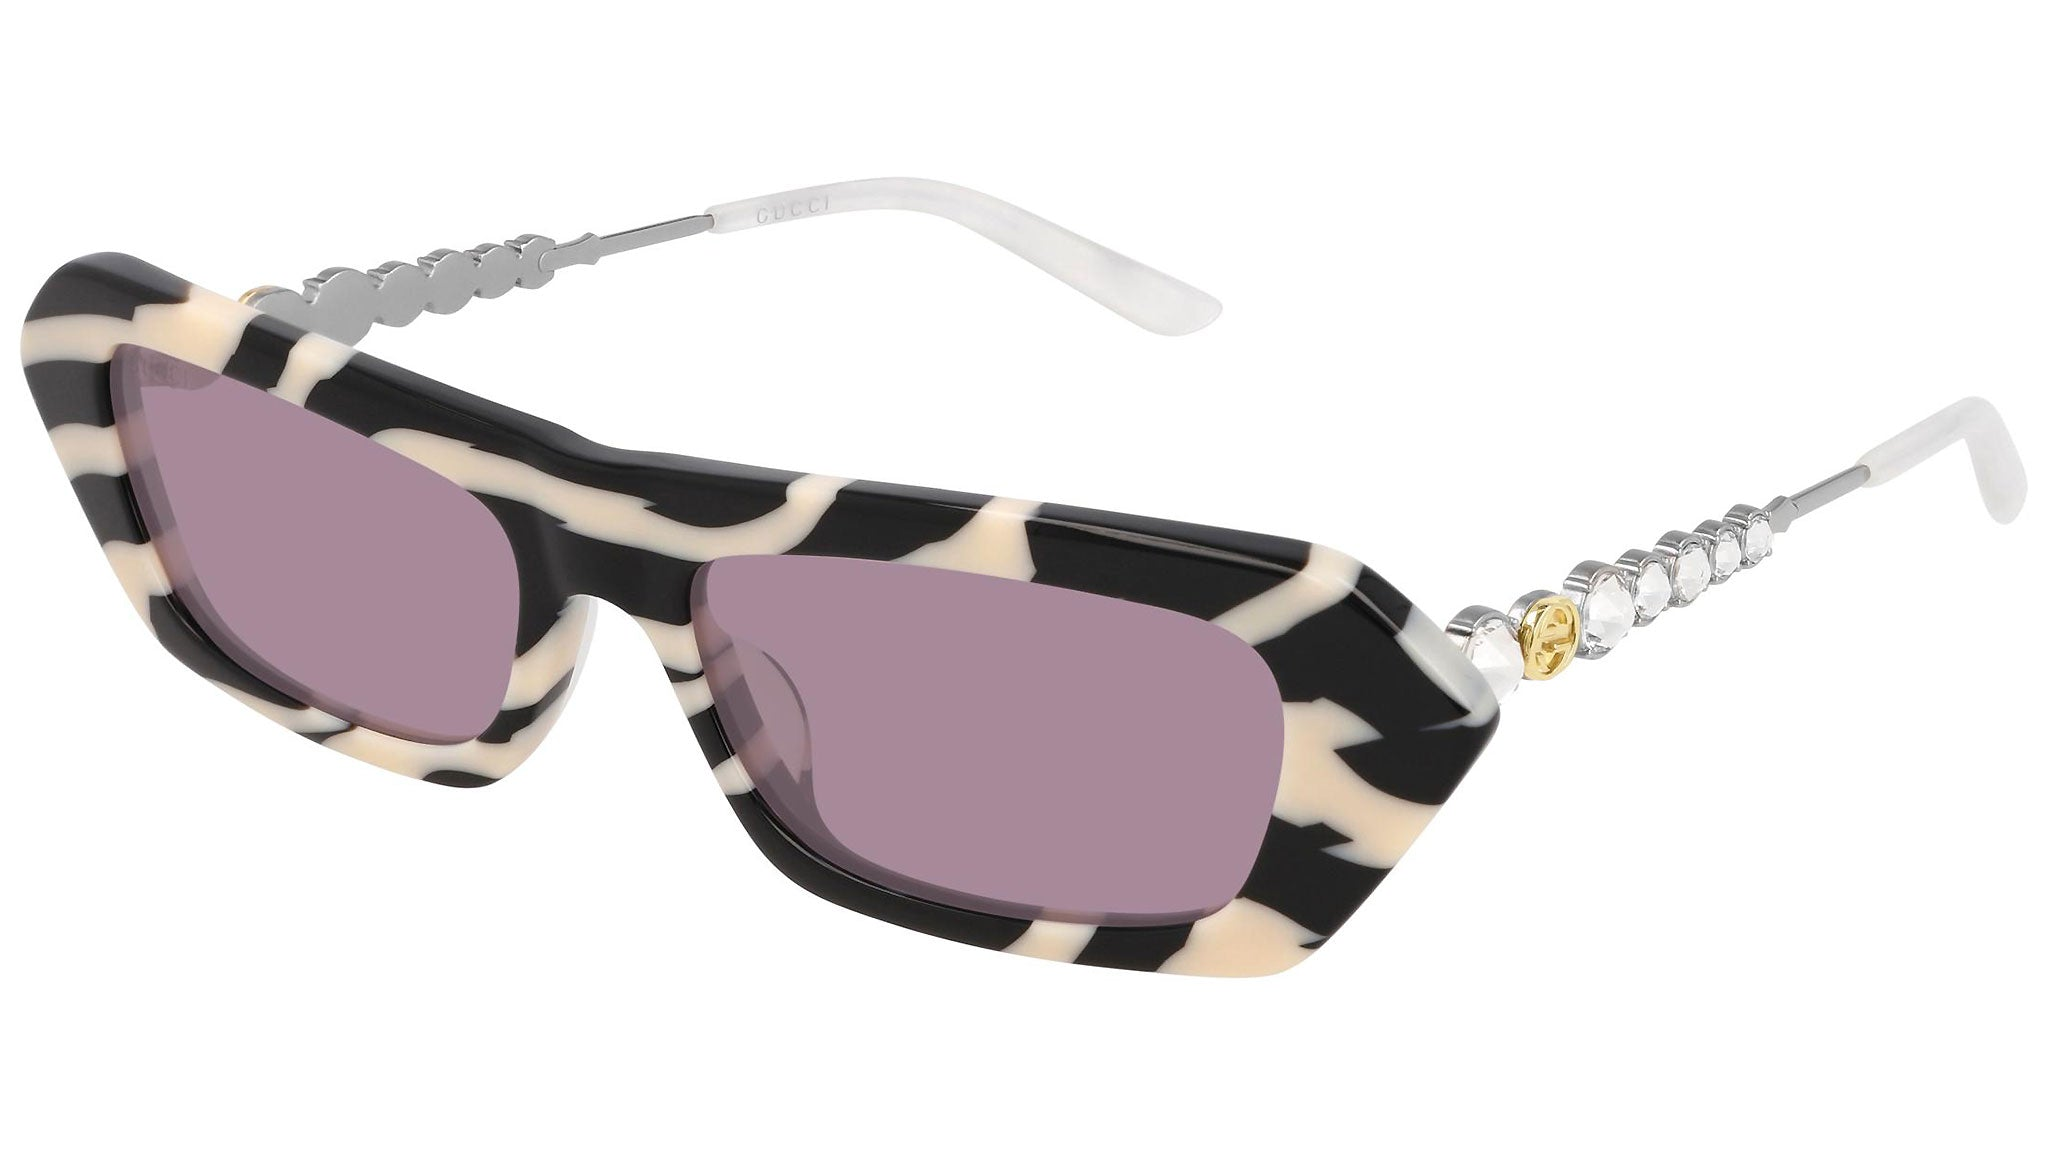 GG0642S ivory black and violet